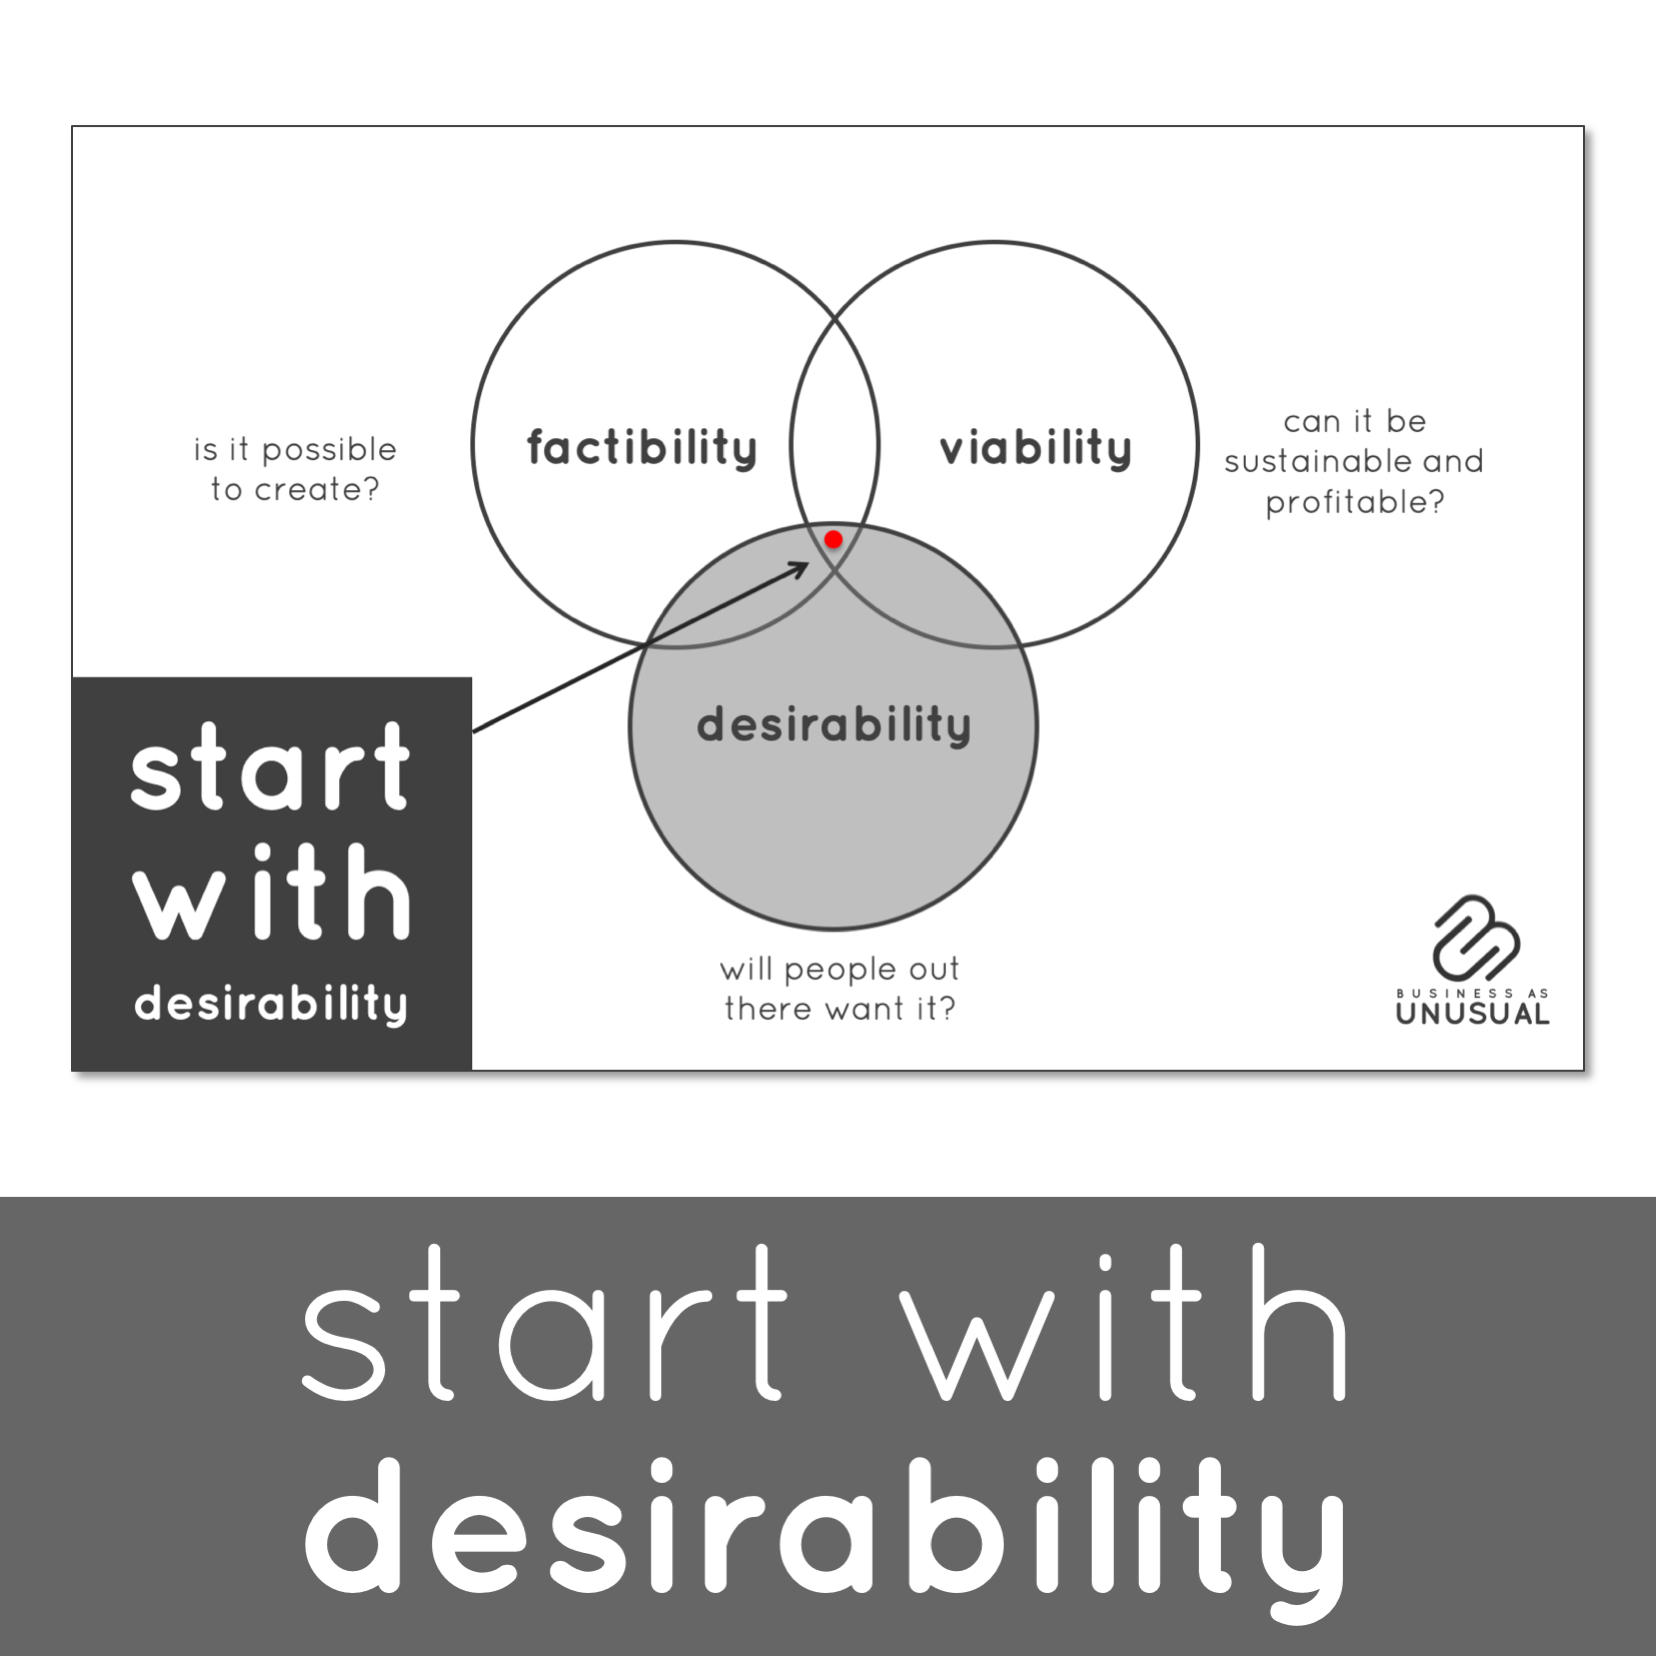 Unusual Games - Start with Desirability - Innovation & Startups